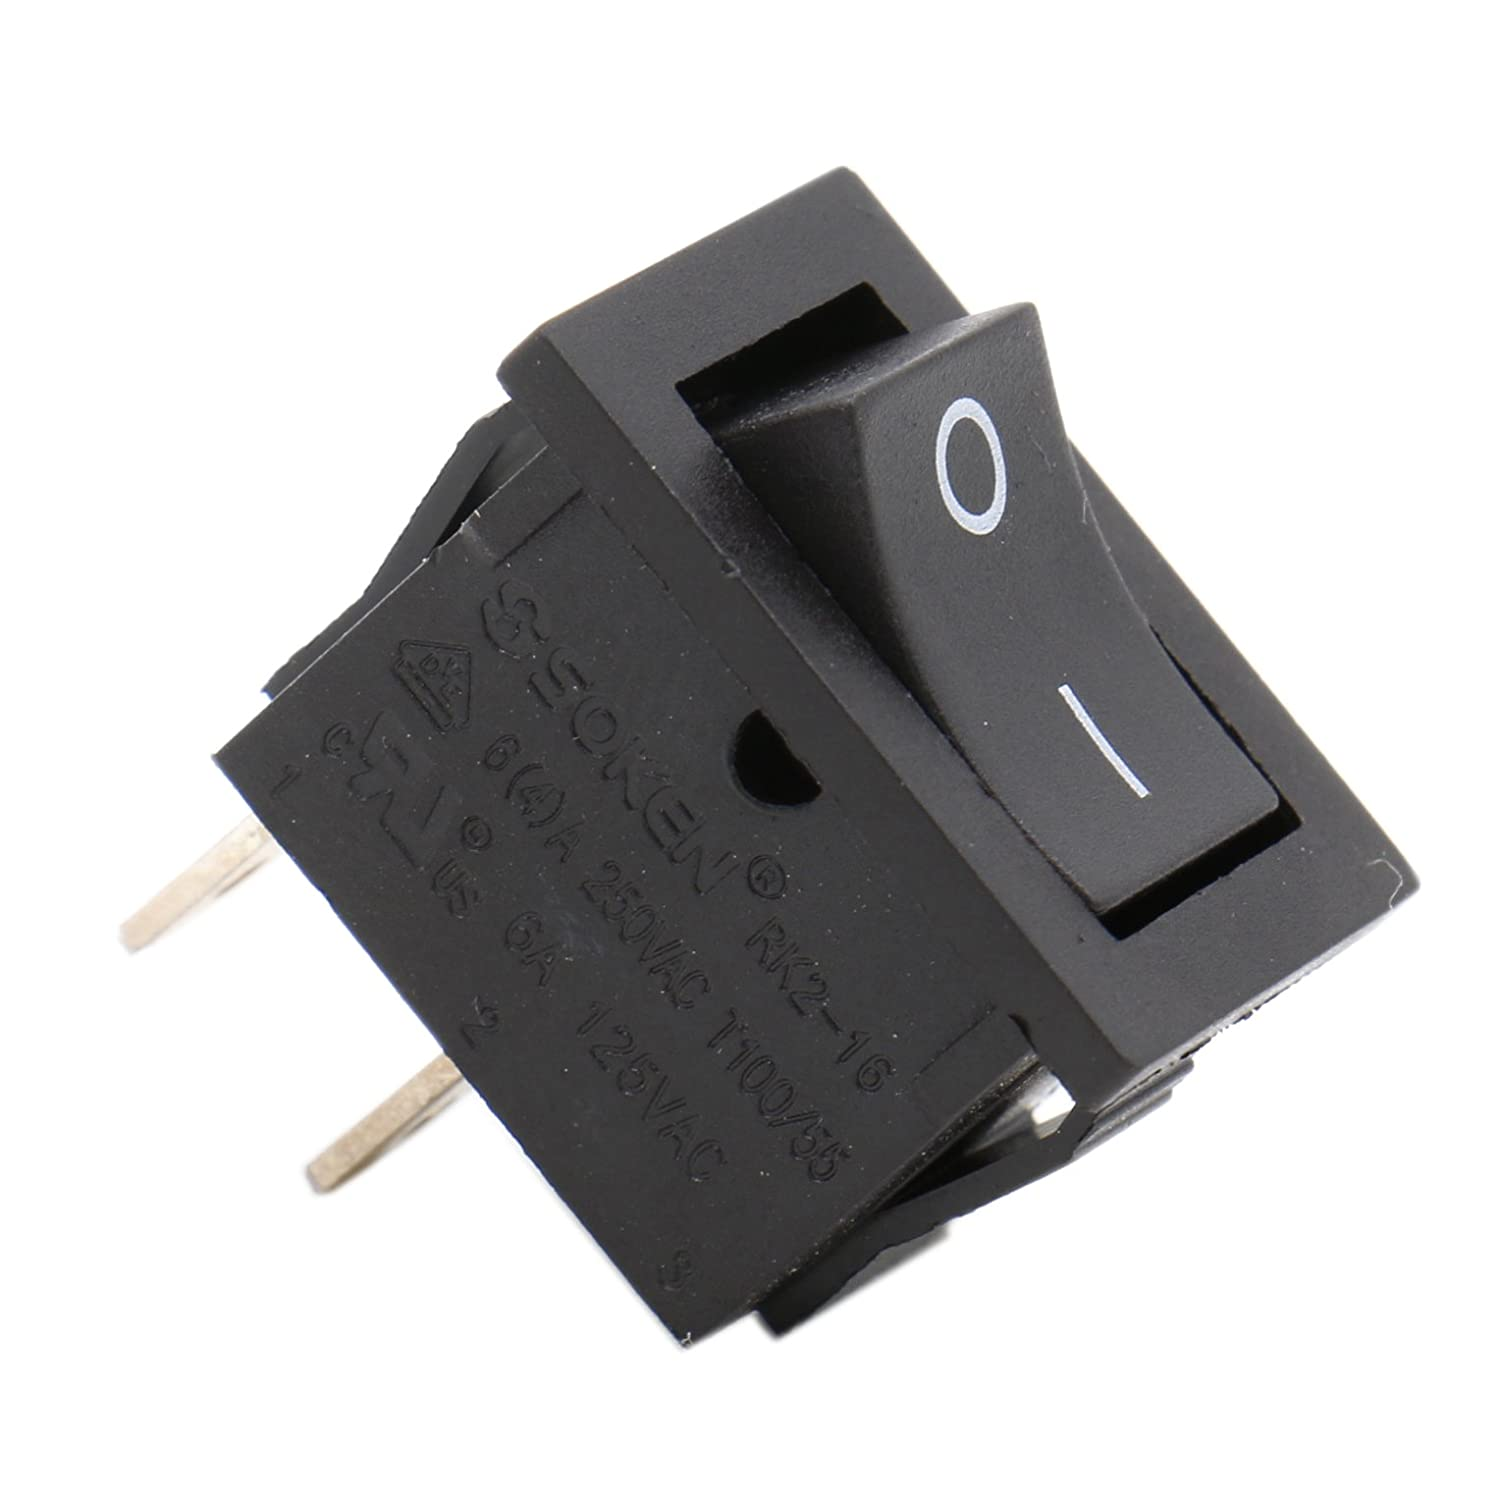 Heschen Black Rectangle Rocker Switch ON-OFF SPST 2 Position 2 Terminals 6A 250VAC/125VAC UL VDE 5Pack Ningbo Master Soken Electrical Co.Ltd HS-RK2-14